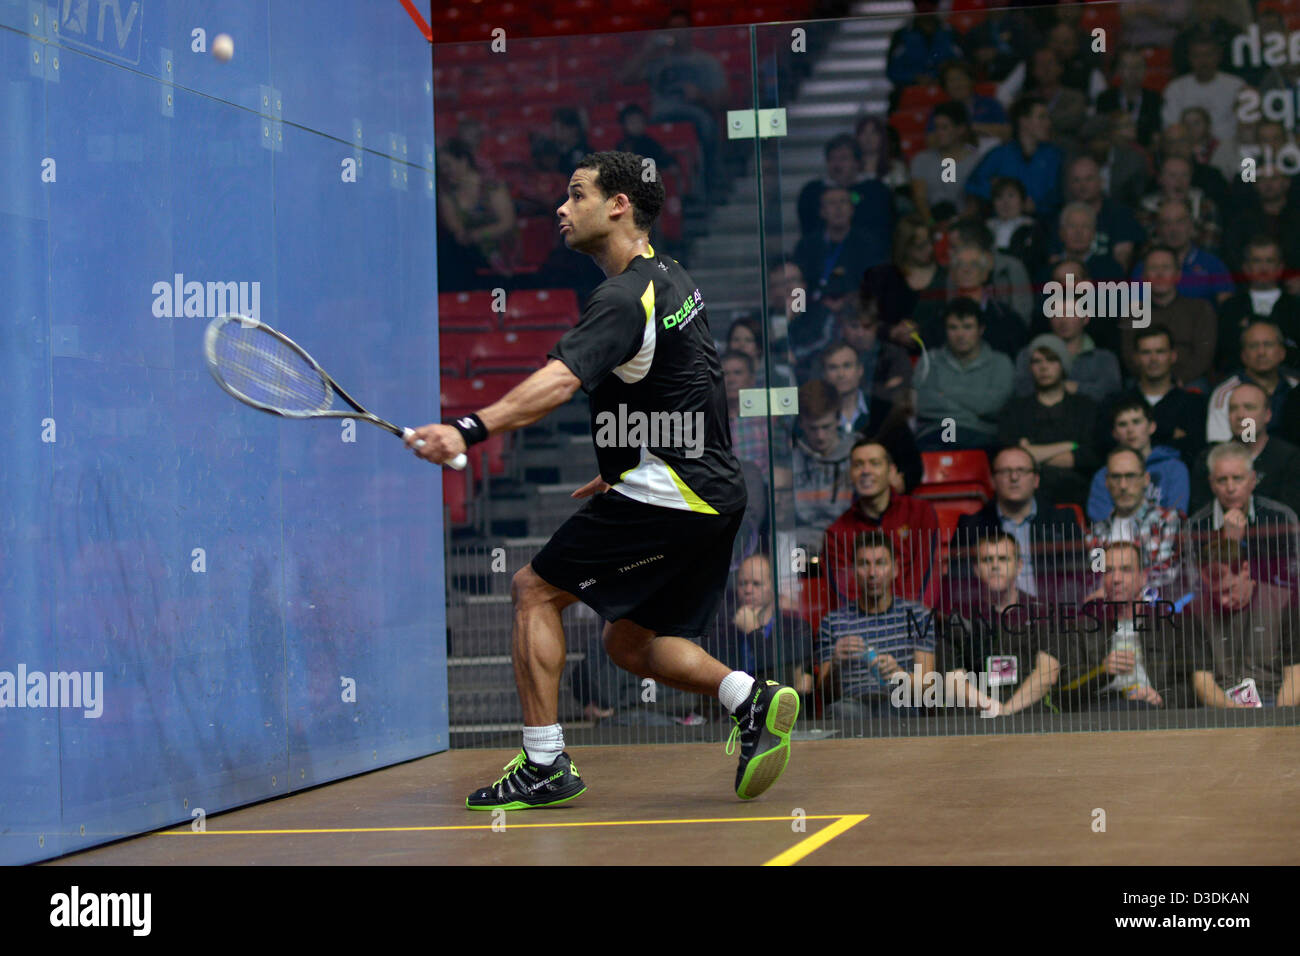 adrian grant makes a backhand return during his quarter-final match against peter barker at sportcity, manchester - Stock Image